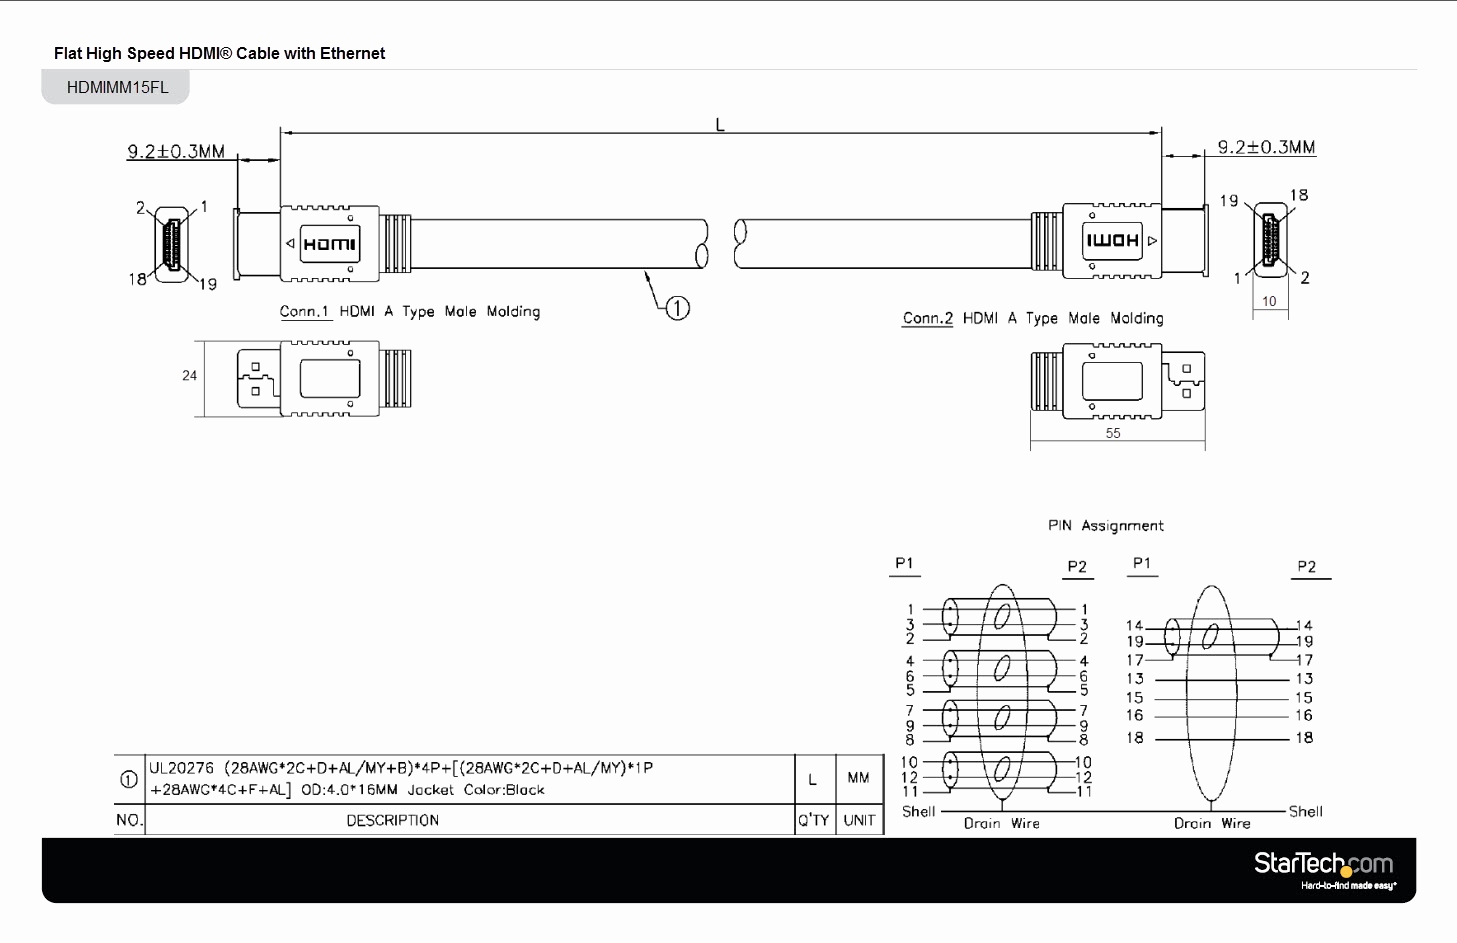 3 phase change over switch wiring diagram hdmi over ethernet wiring diagram hdmi over cat5 wiring diagram collection